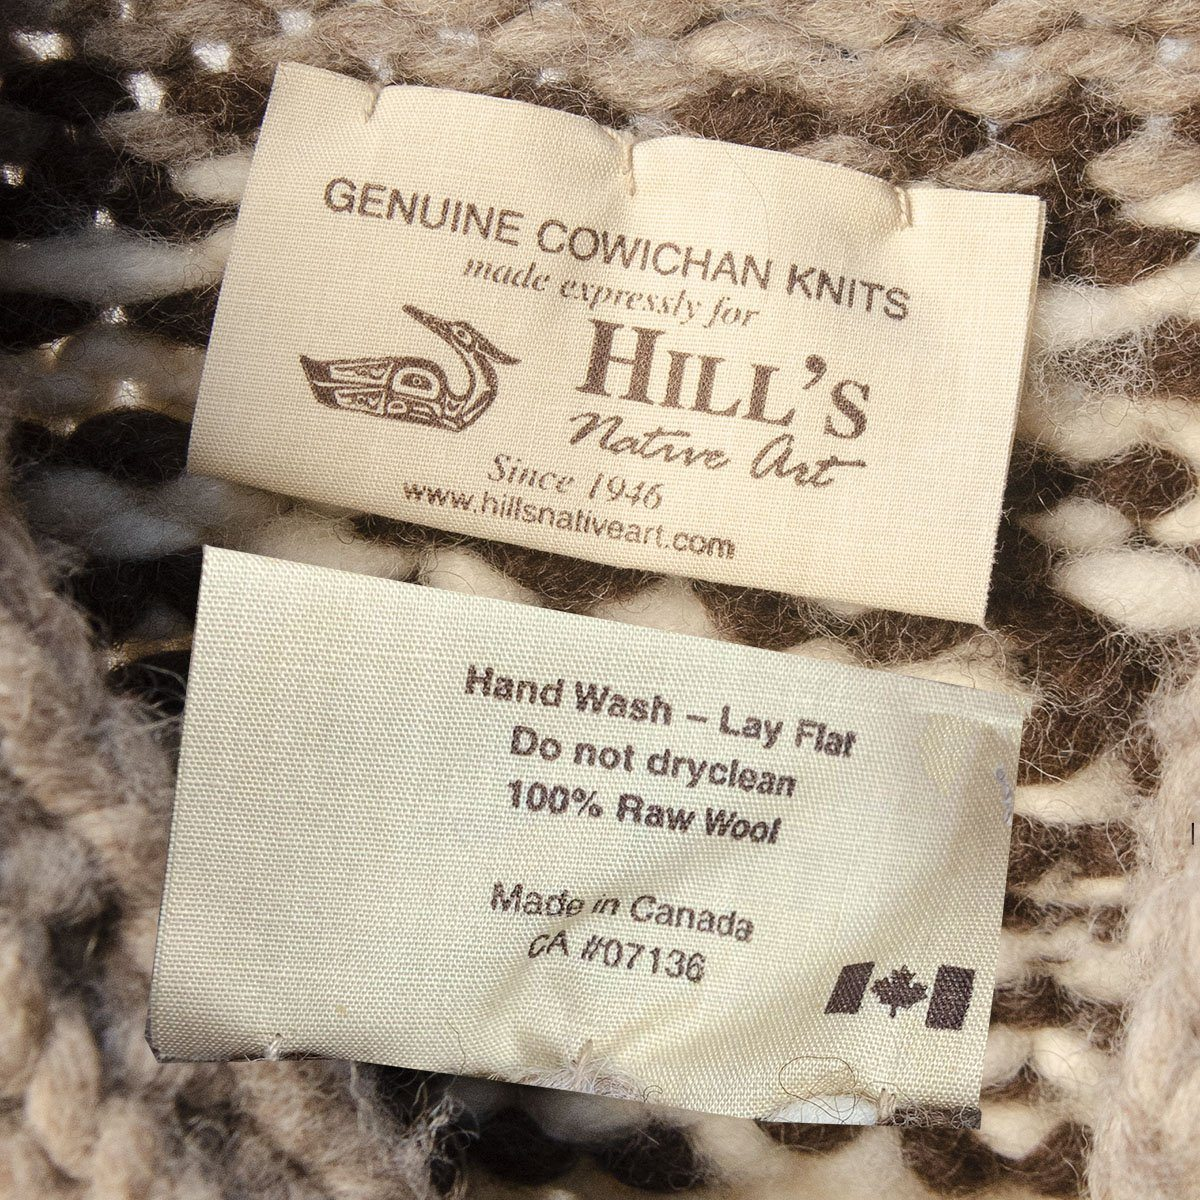 Canadian First Nation Cowchin Cardigan Sweater Label